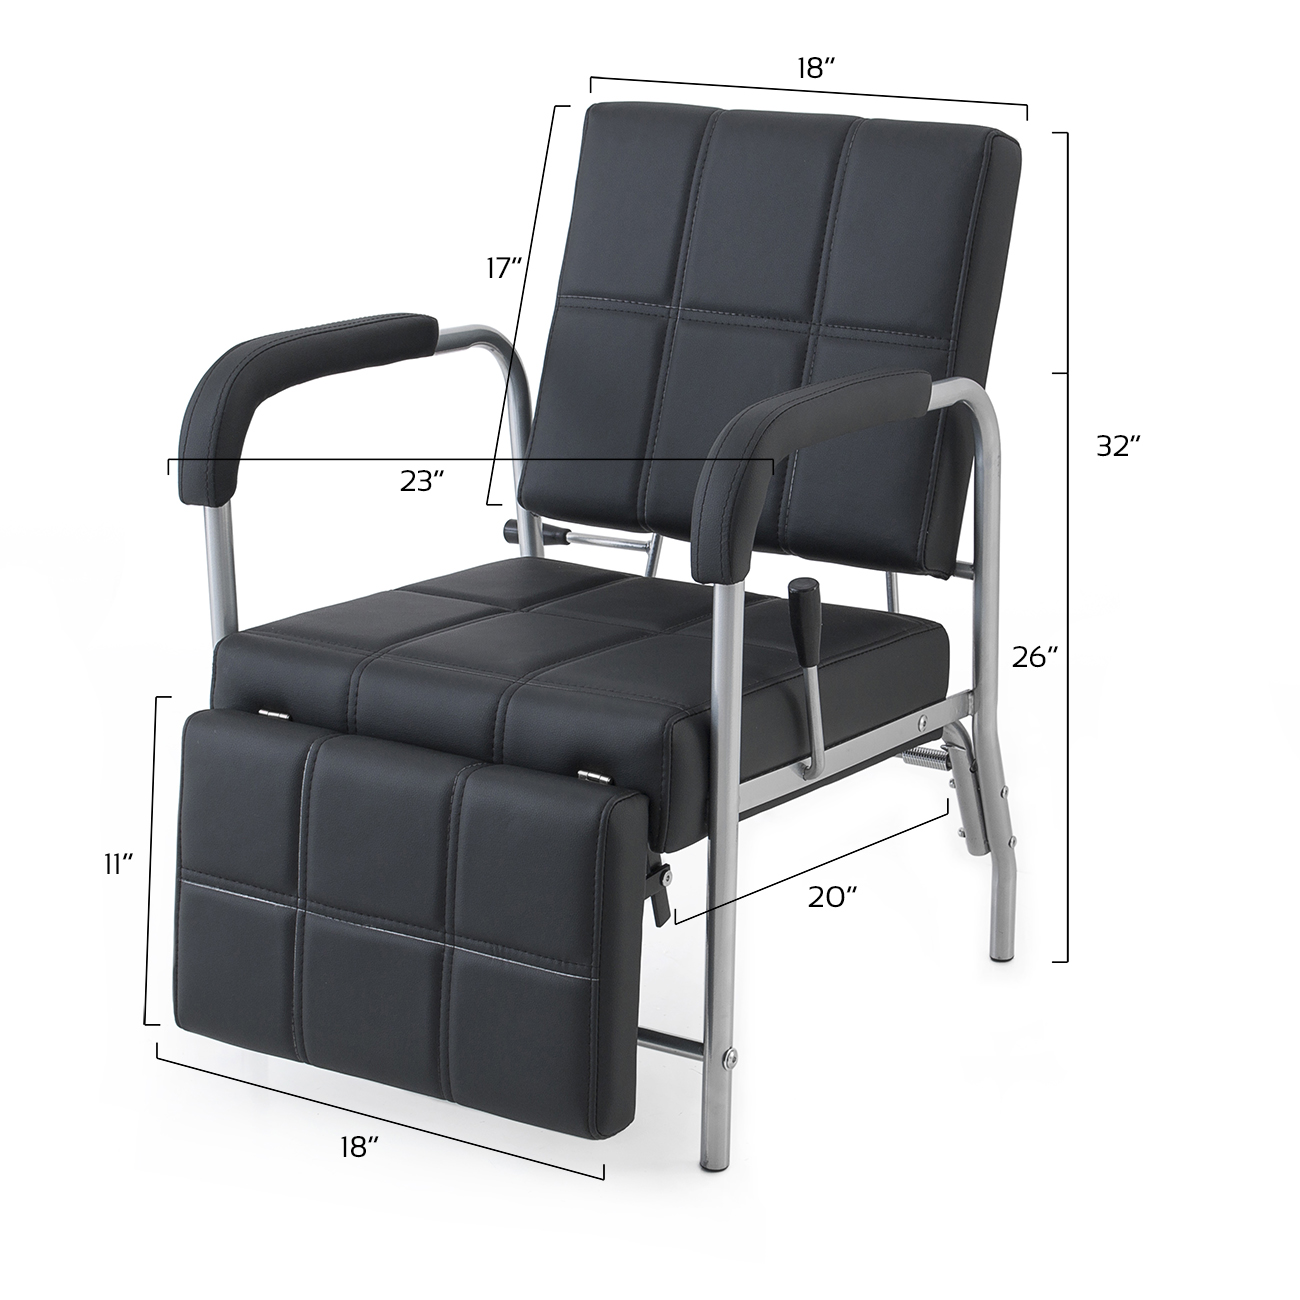 chair with leg rest india wicker chairs walmart reclining shampoo adjustable barber beauty